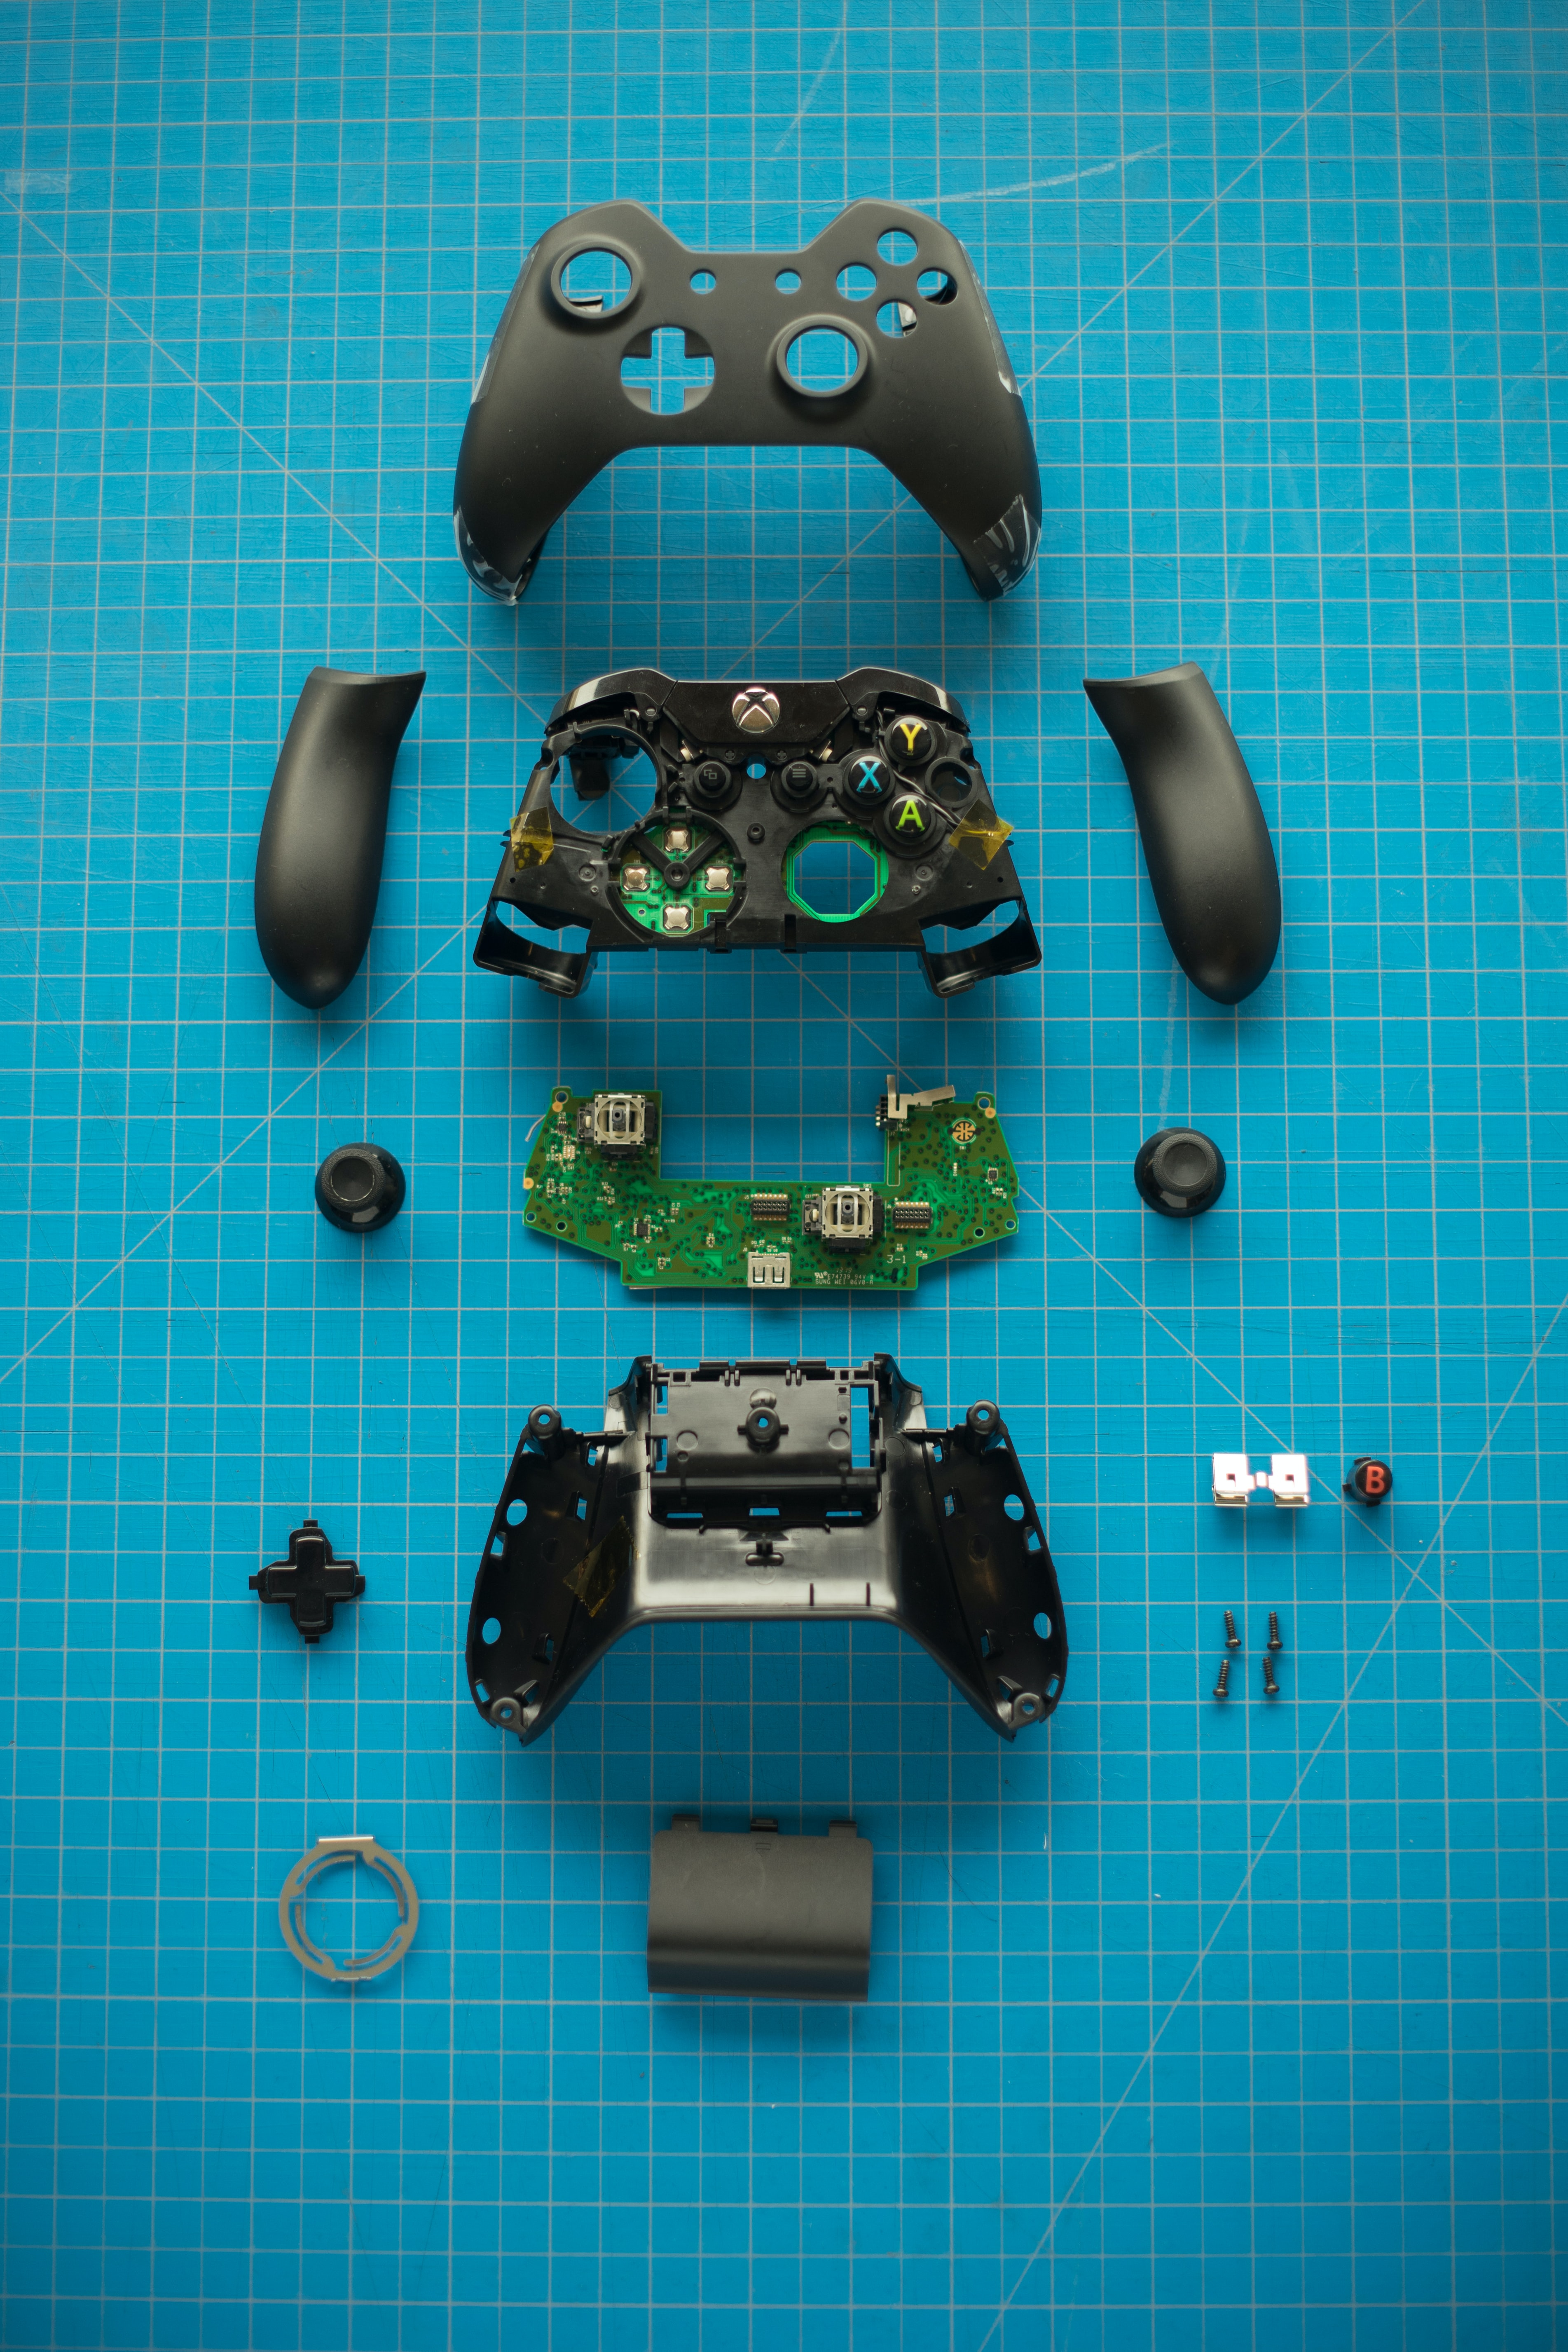 disassembled Xbox One controller